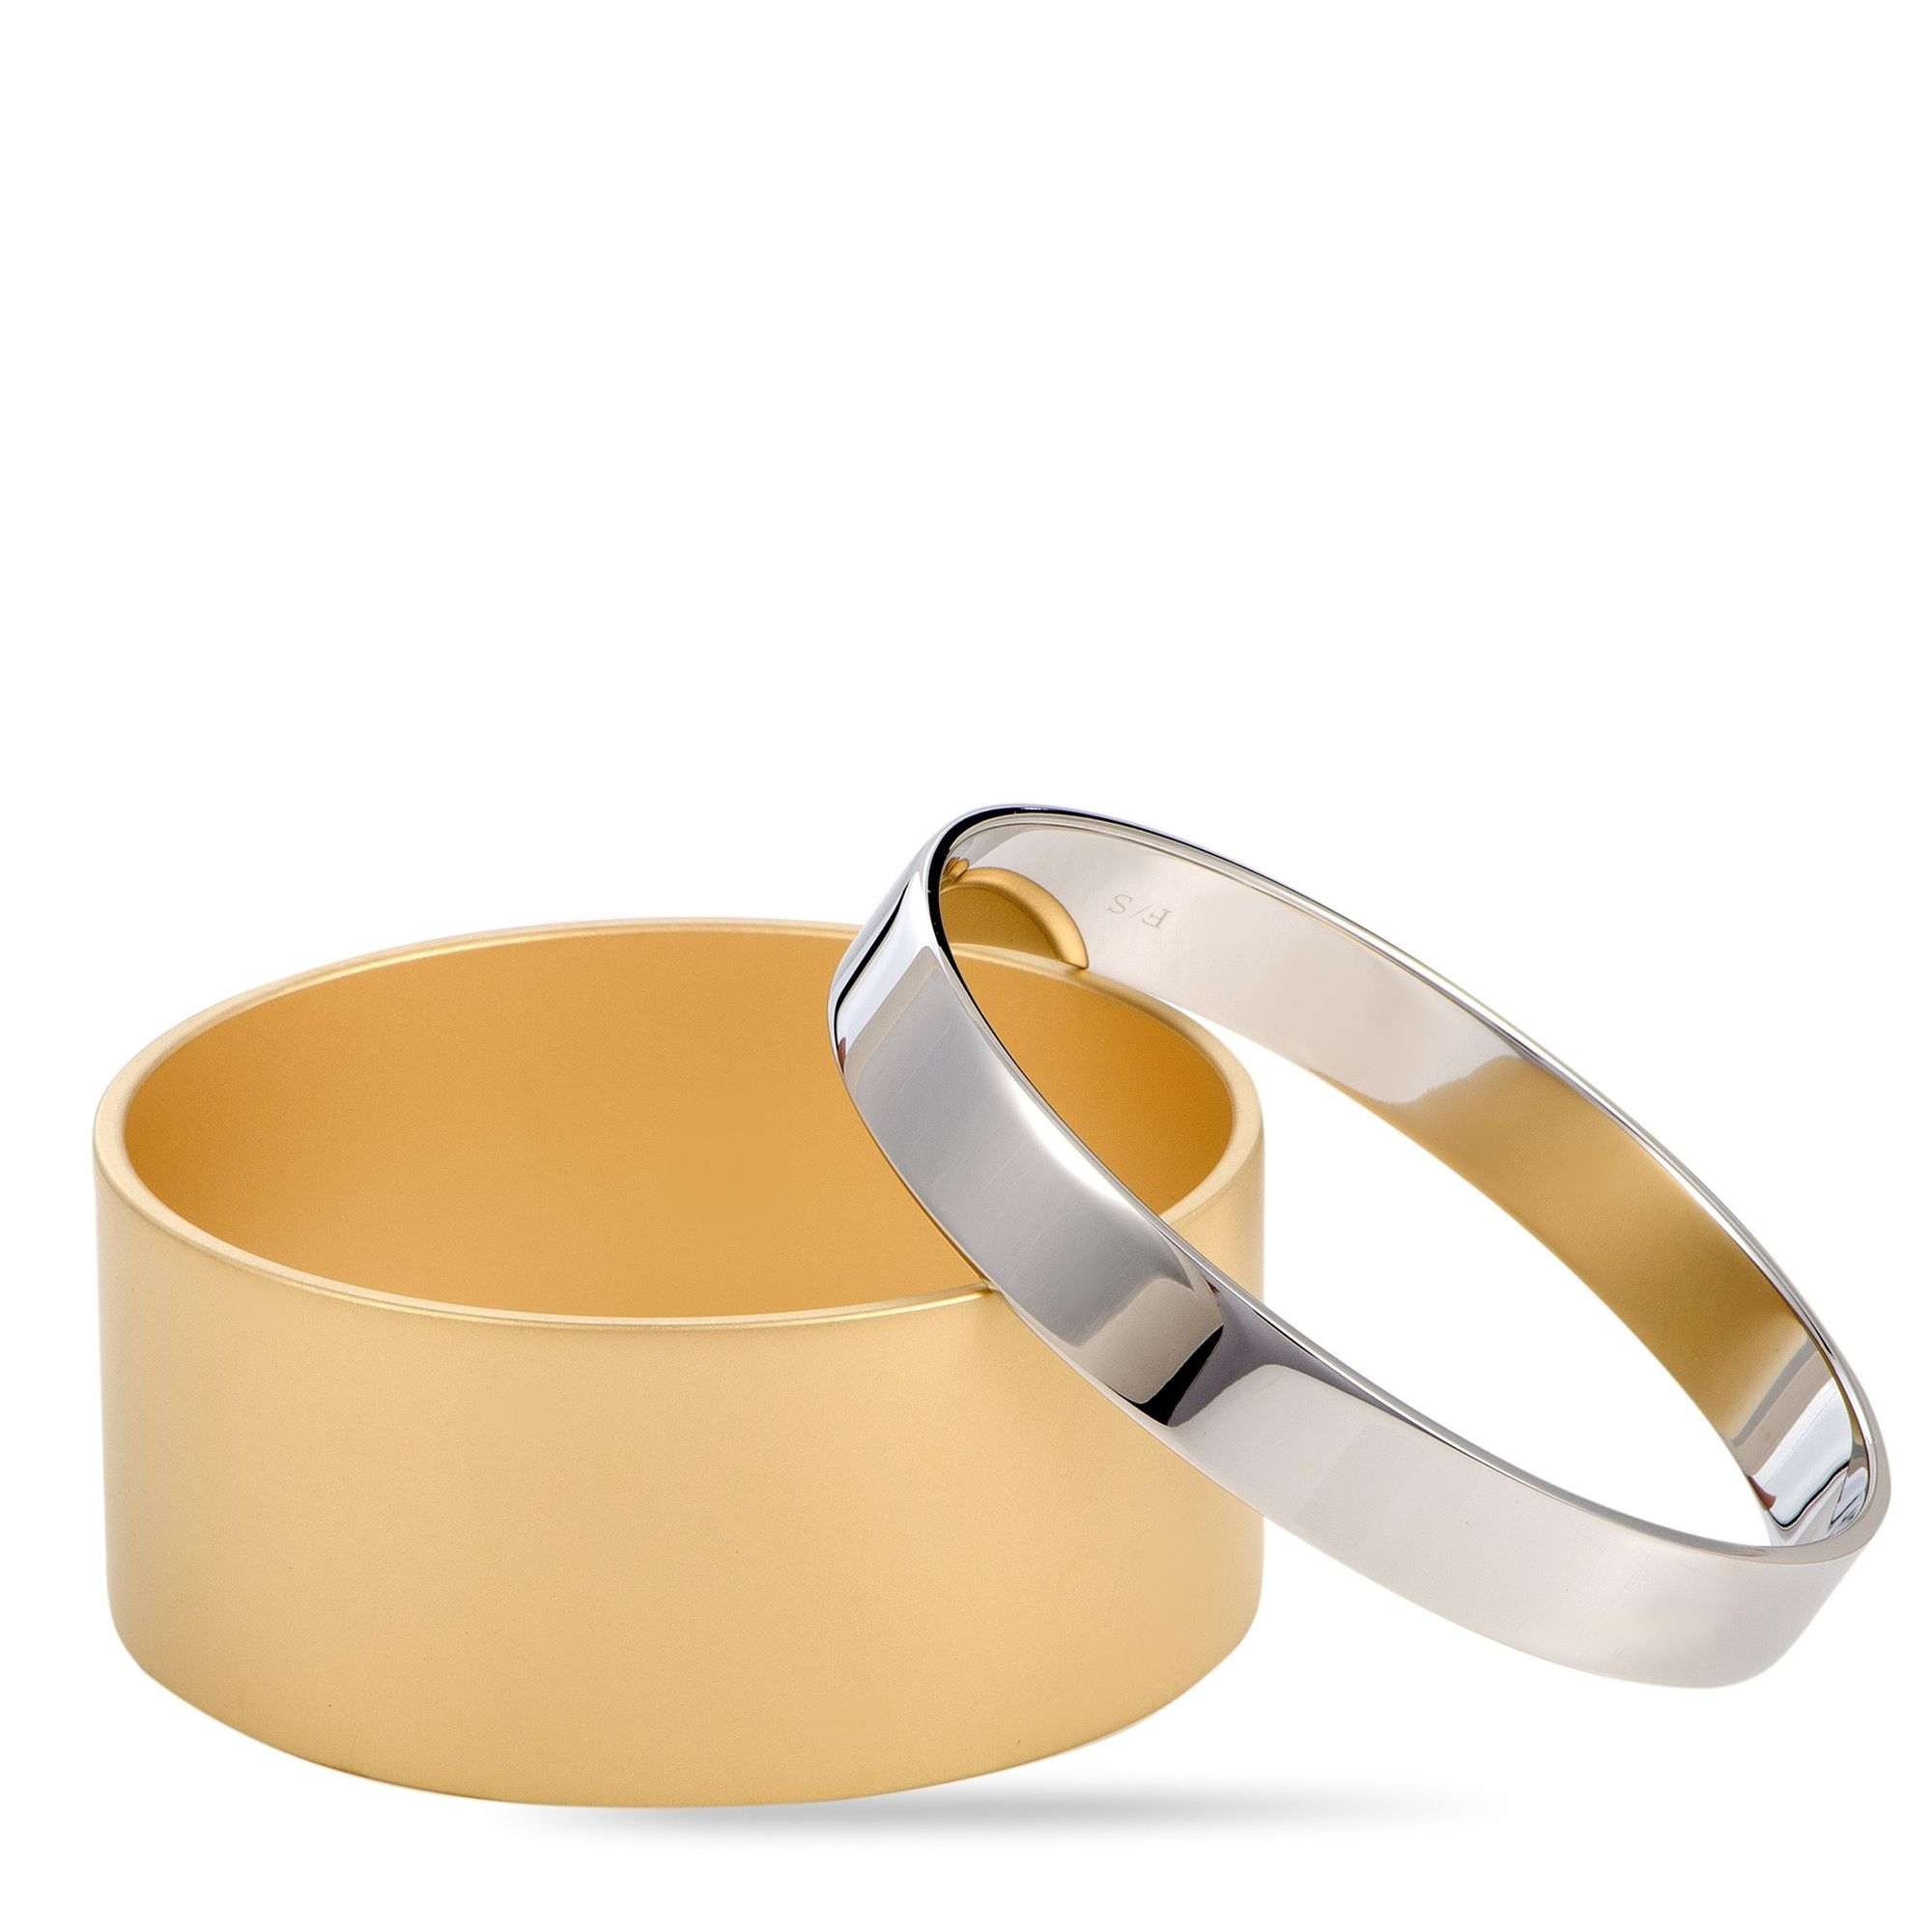 Calvin Klein Satisfaction Gold PVD Stainless Steel Bangle Bracelet